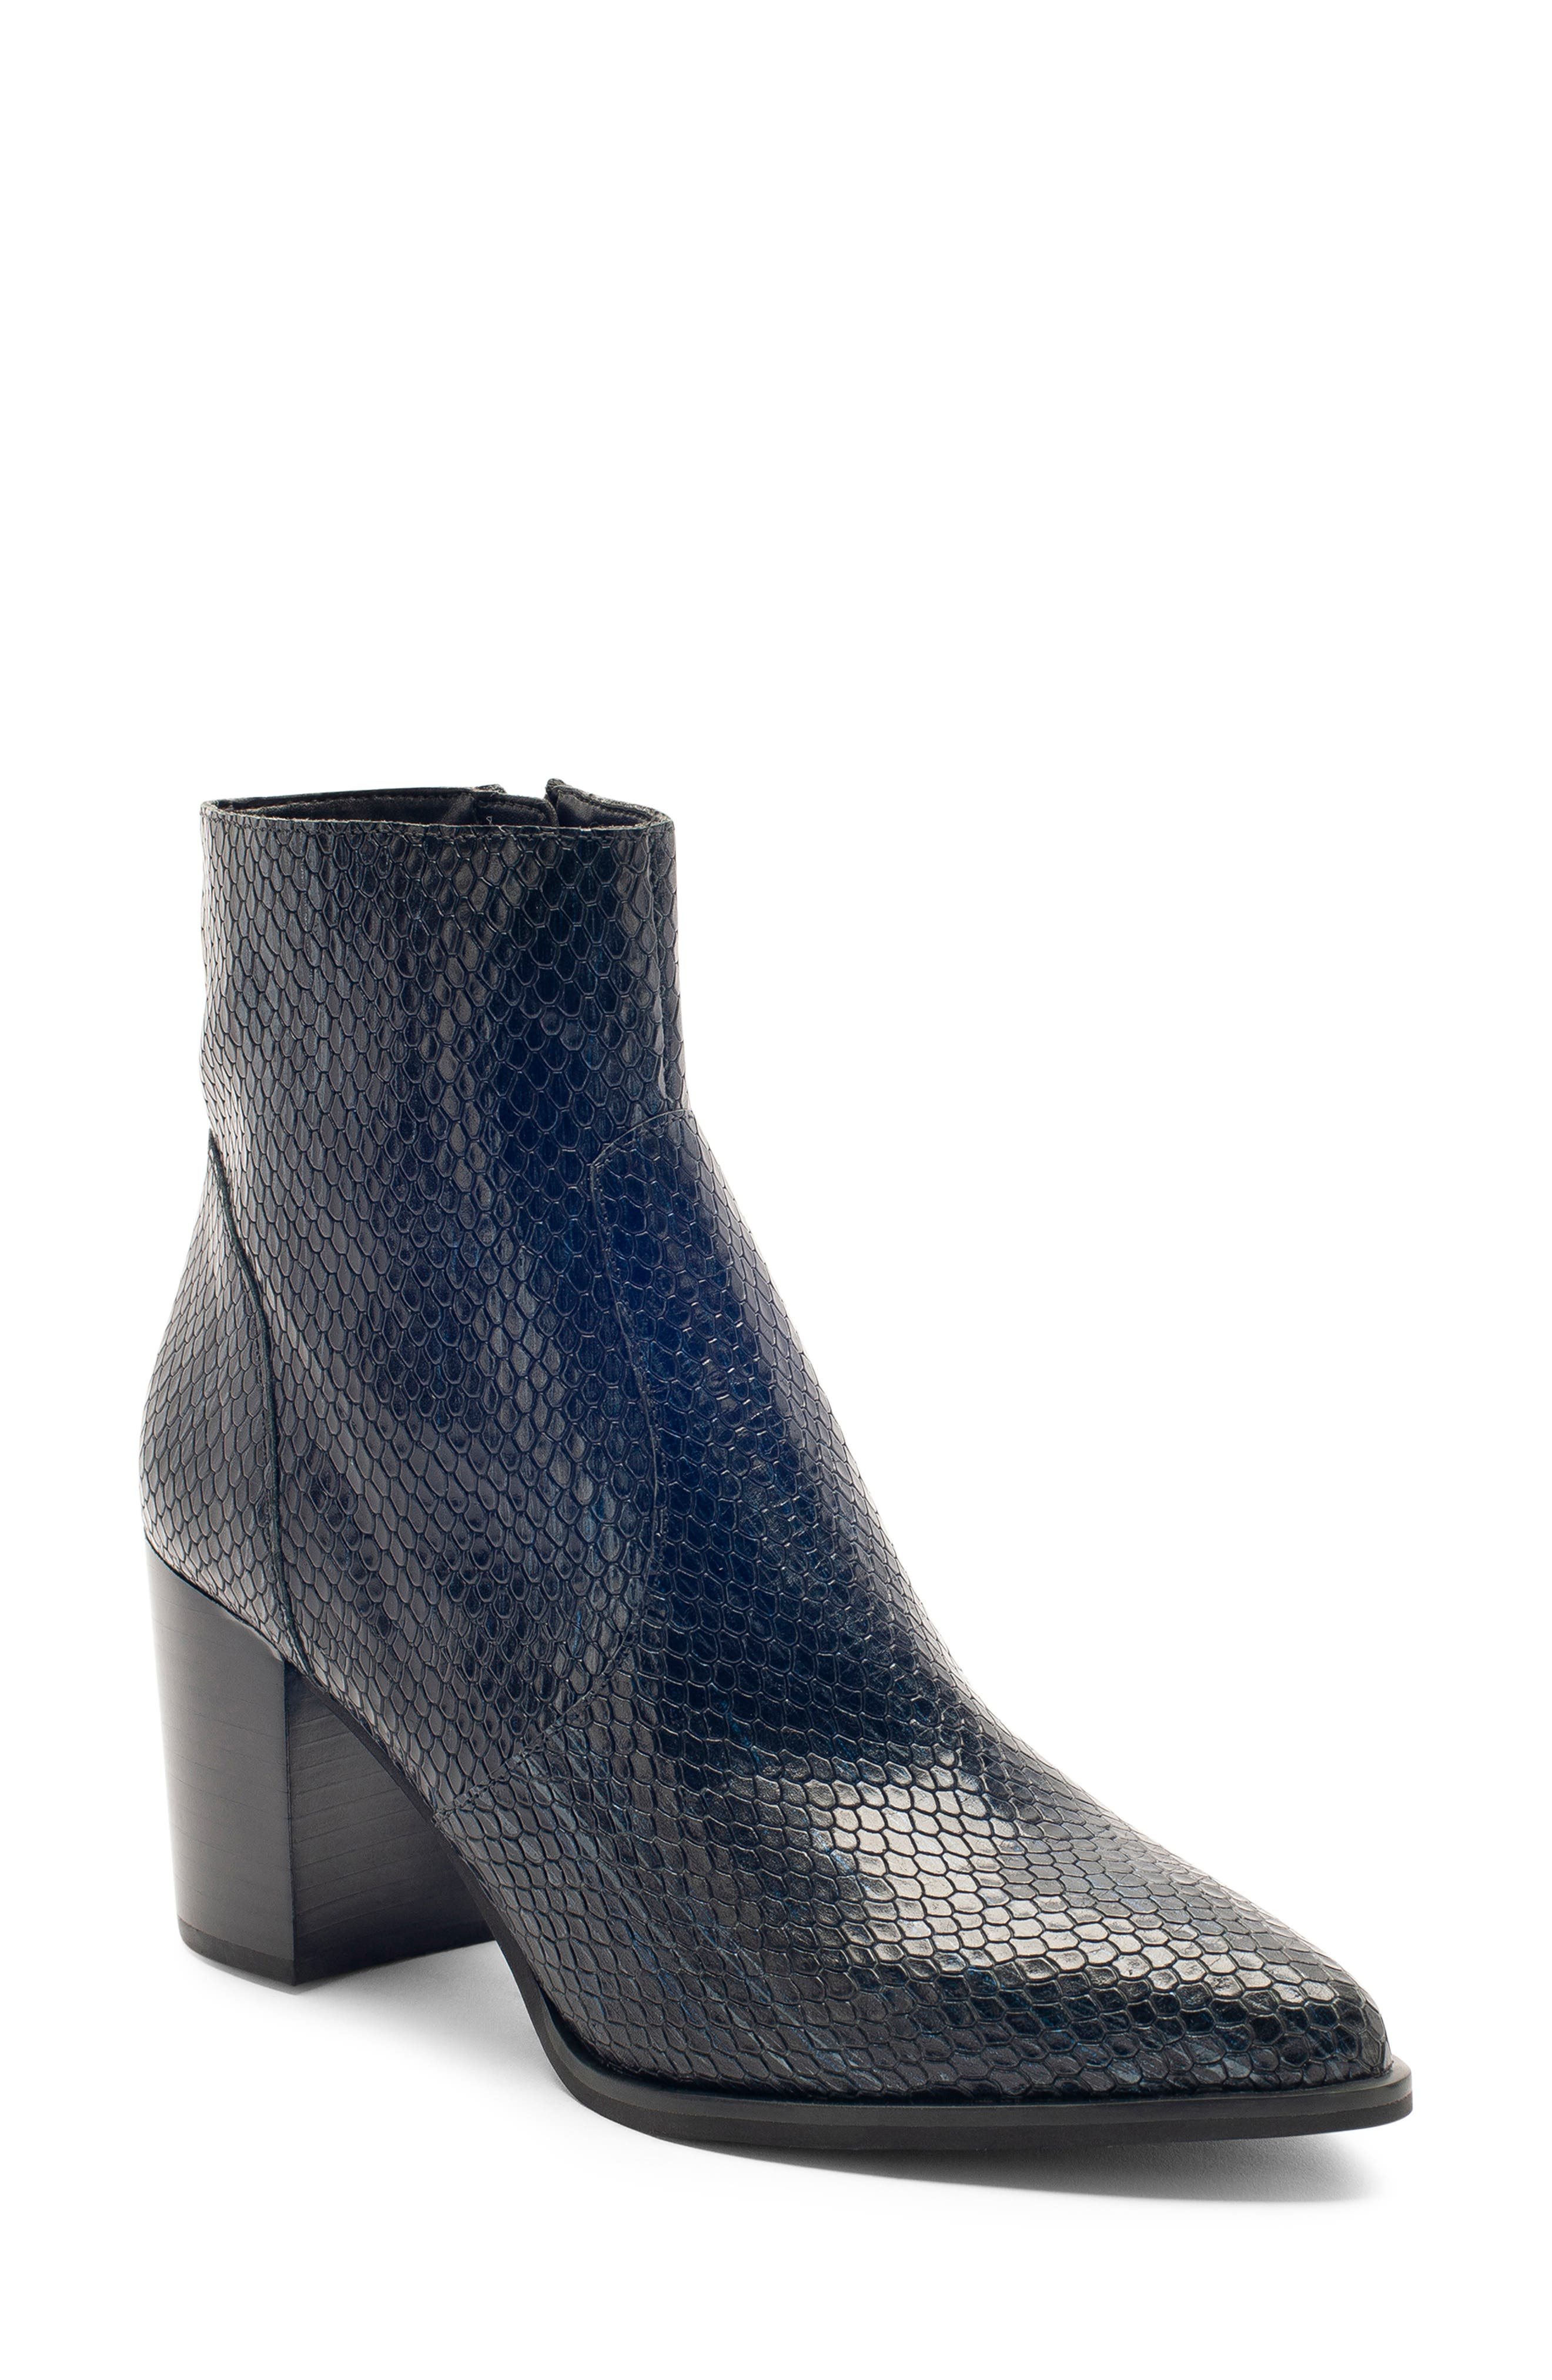 Tania Waterproof Bootie,                         Main,                         color, BLACK SNAKE LEATHER